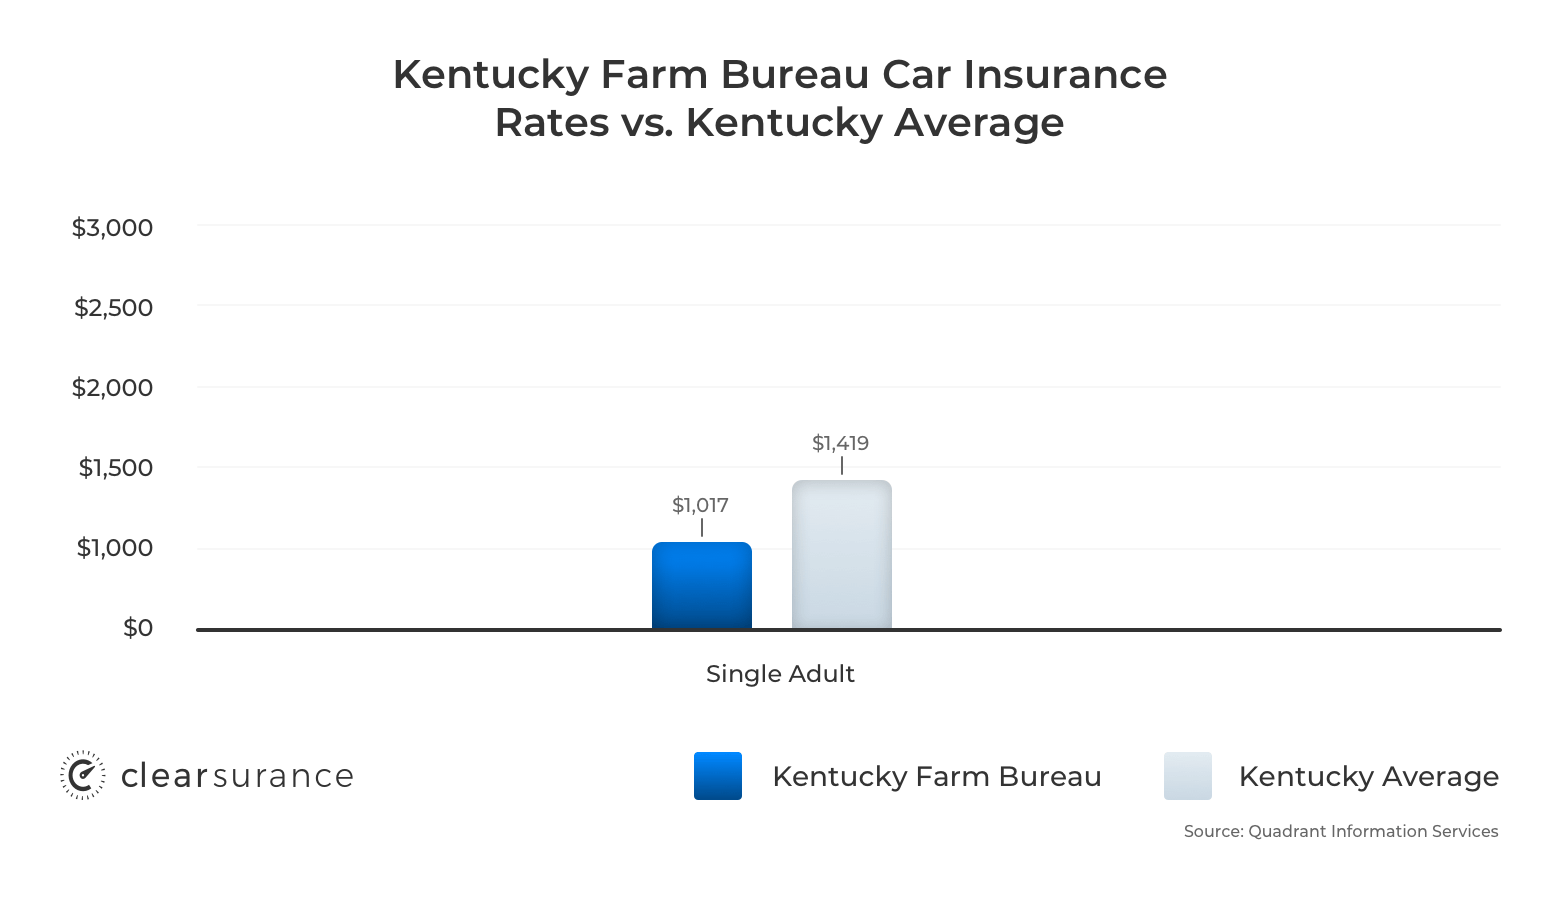 Kentucky Farm Bureau car insurance rates